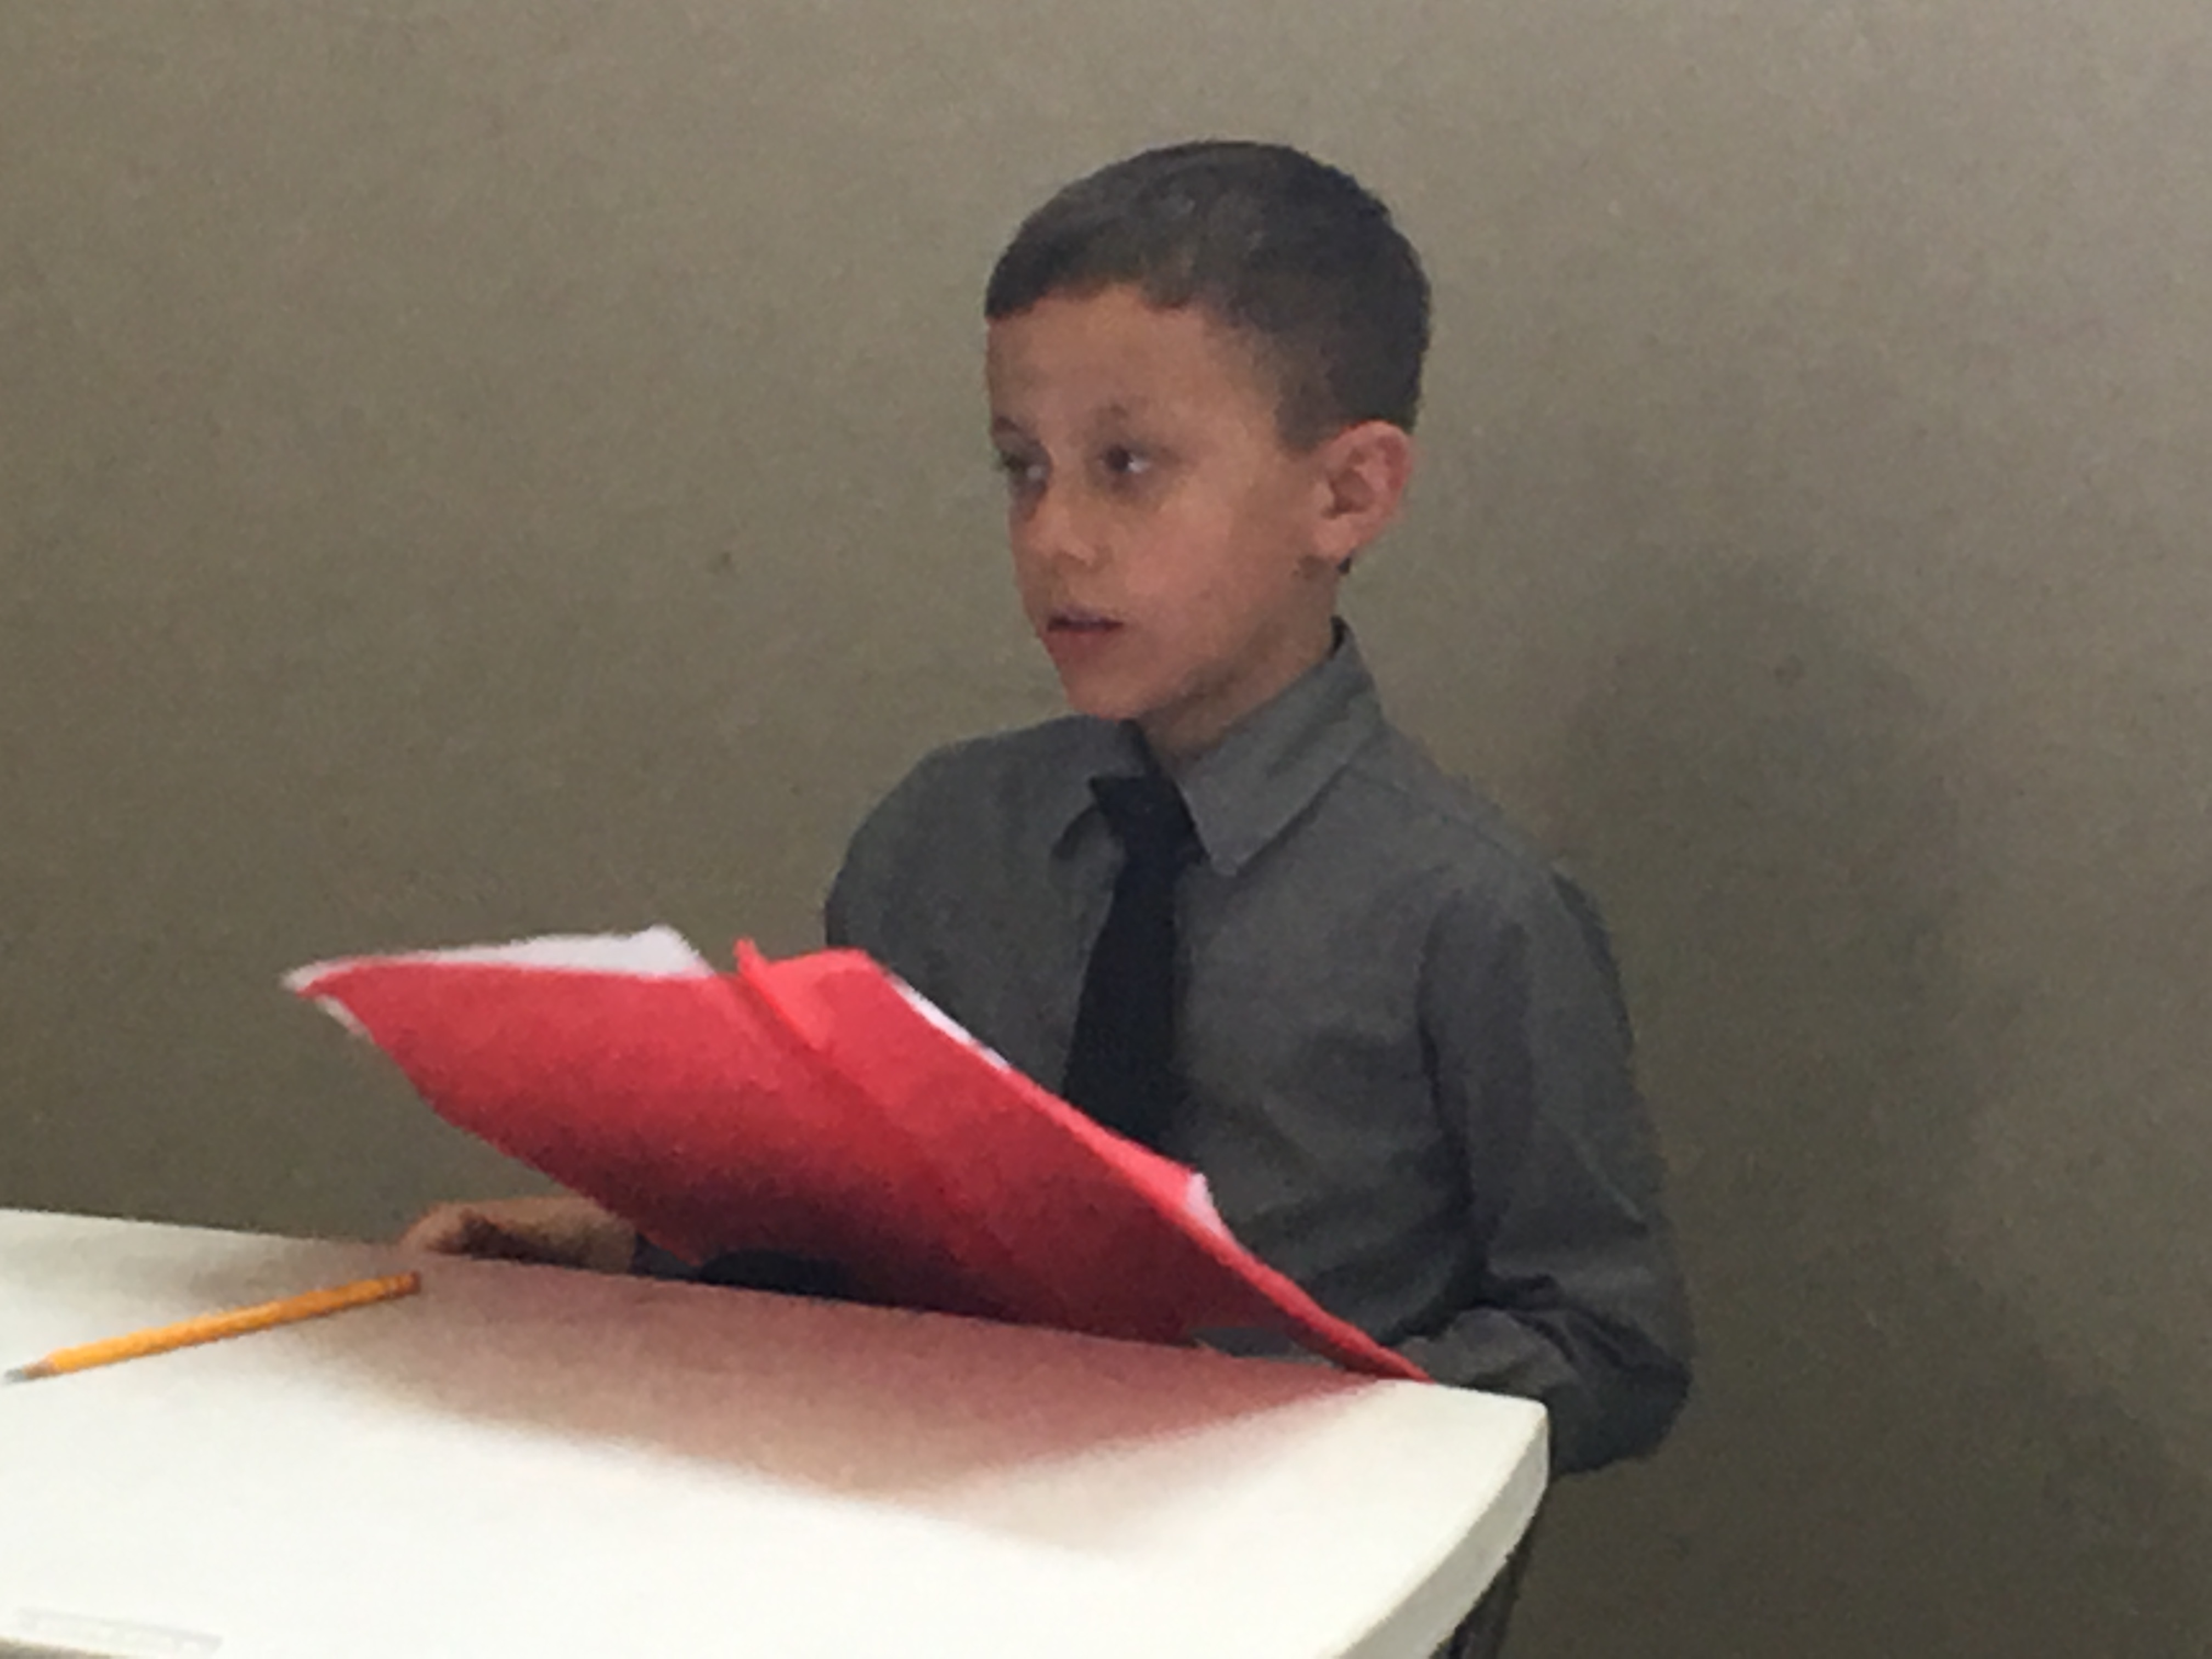 Giving an oral report.